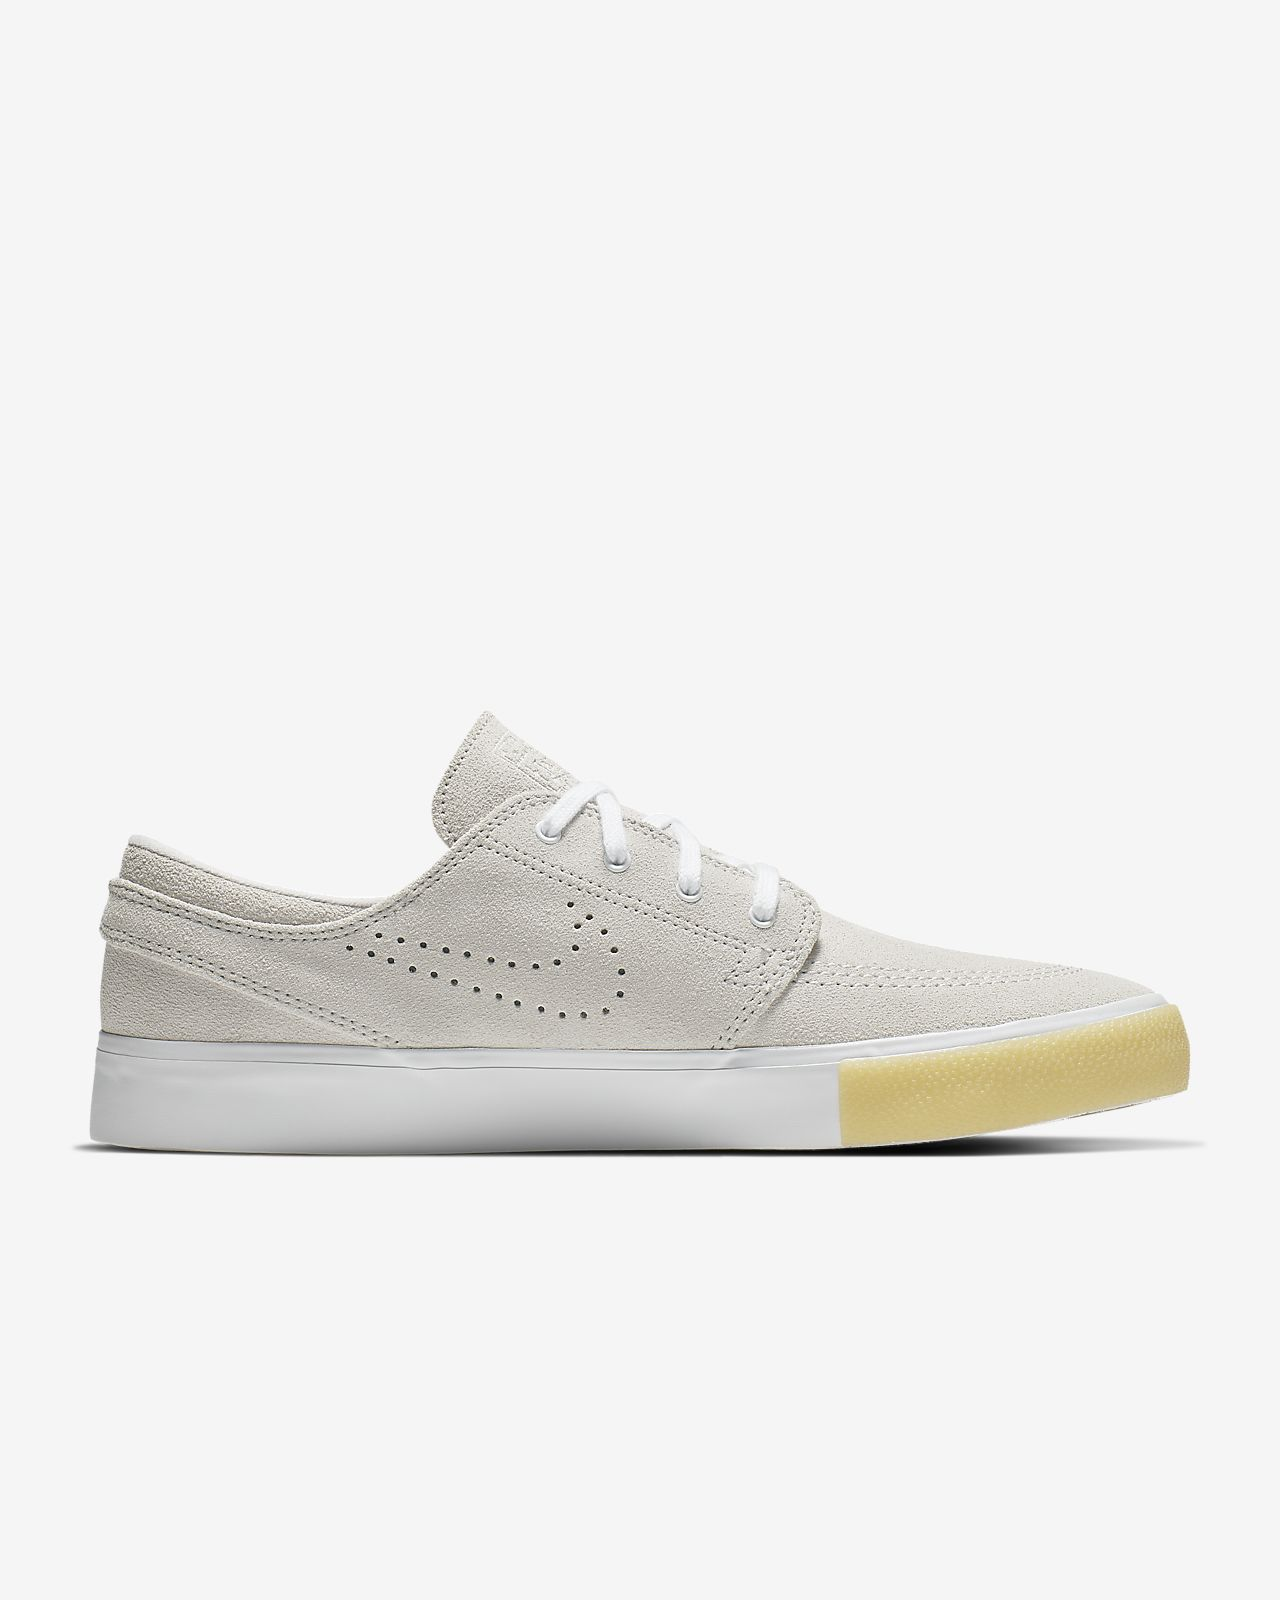 Details about NEW Men's Size 9.5 Nike SB Zoom Stefan Janoski RM SE Low Top Shoes White Grey